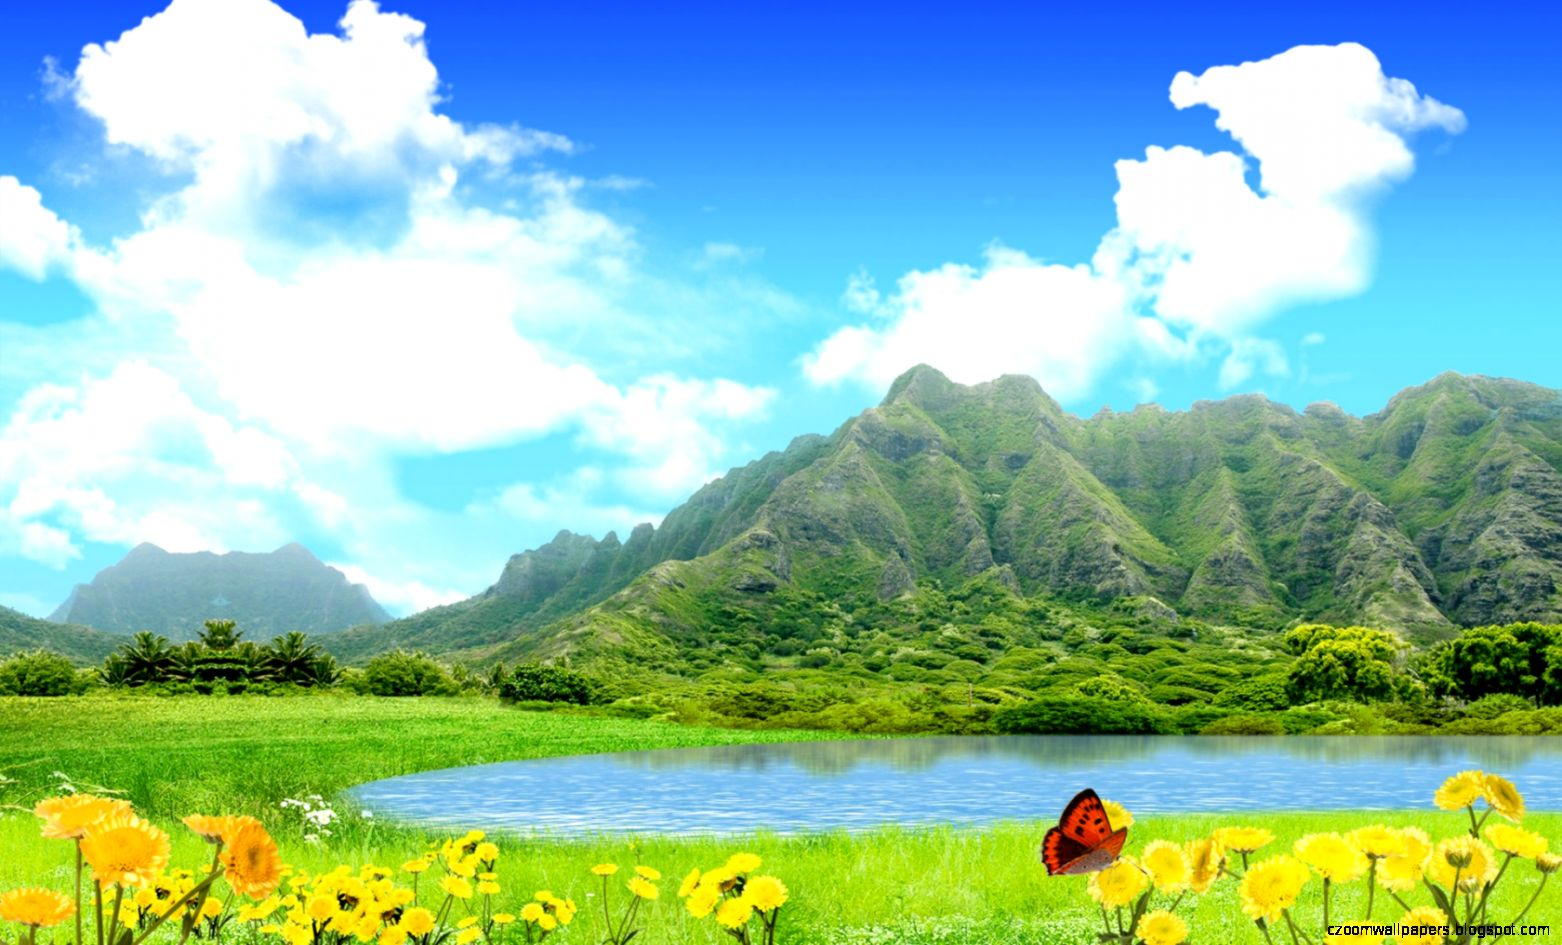 Nature wallpaper for windows 7 zoom wallpapers - Nature wallpaper free download windows 7 ...